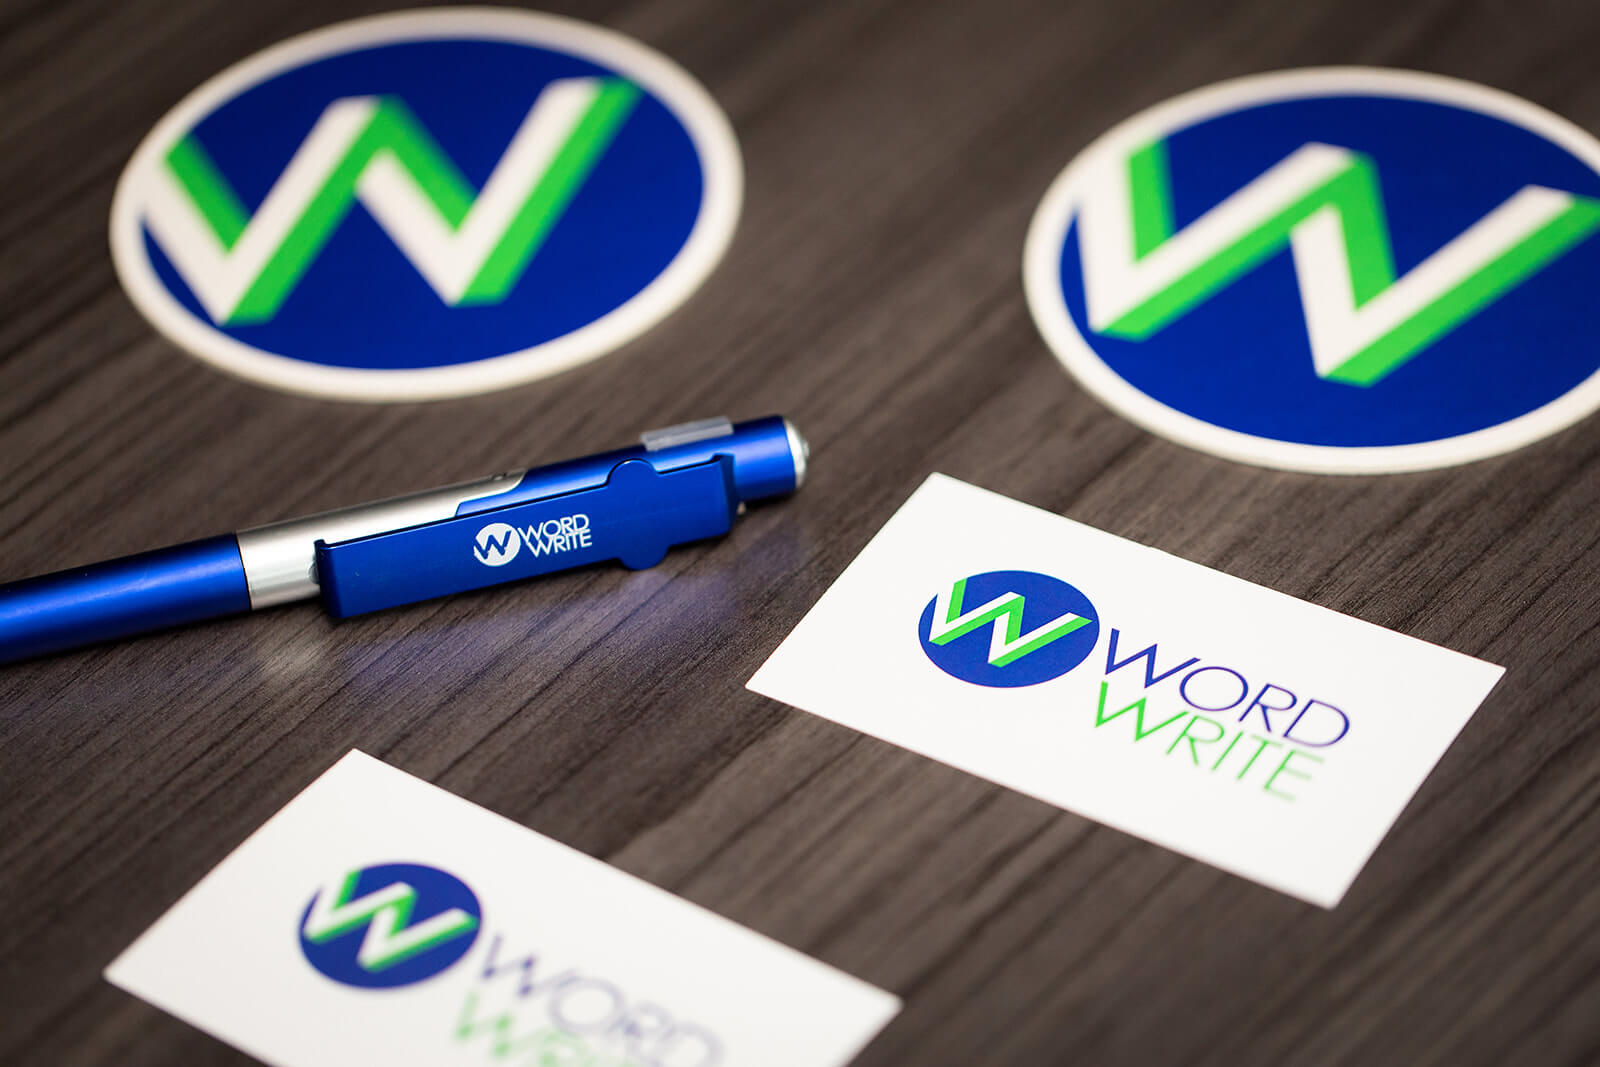 WordWrite coasters, pen, and business cards